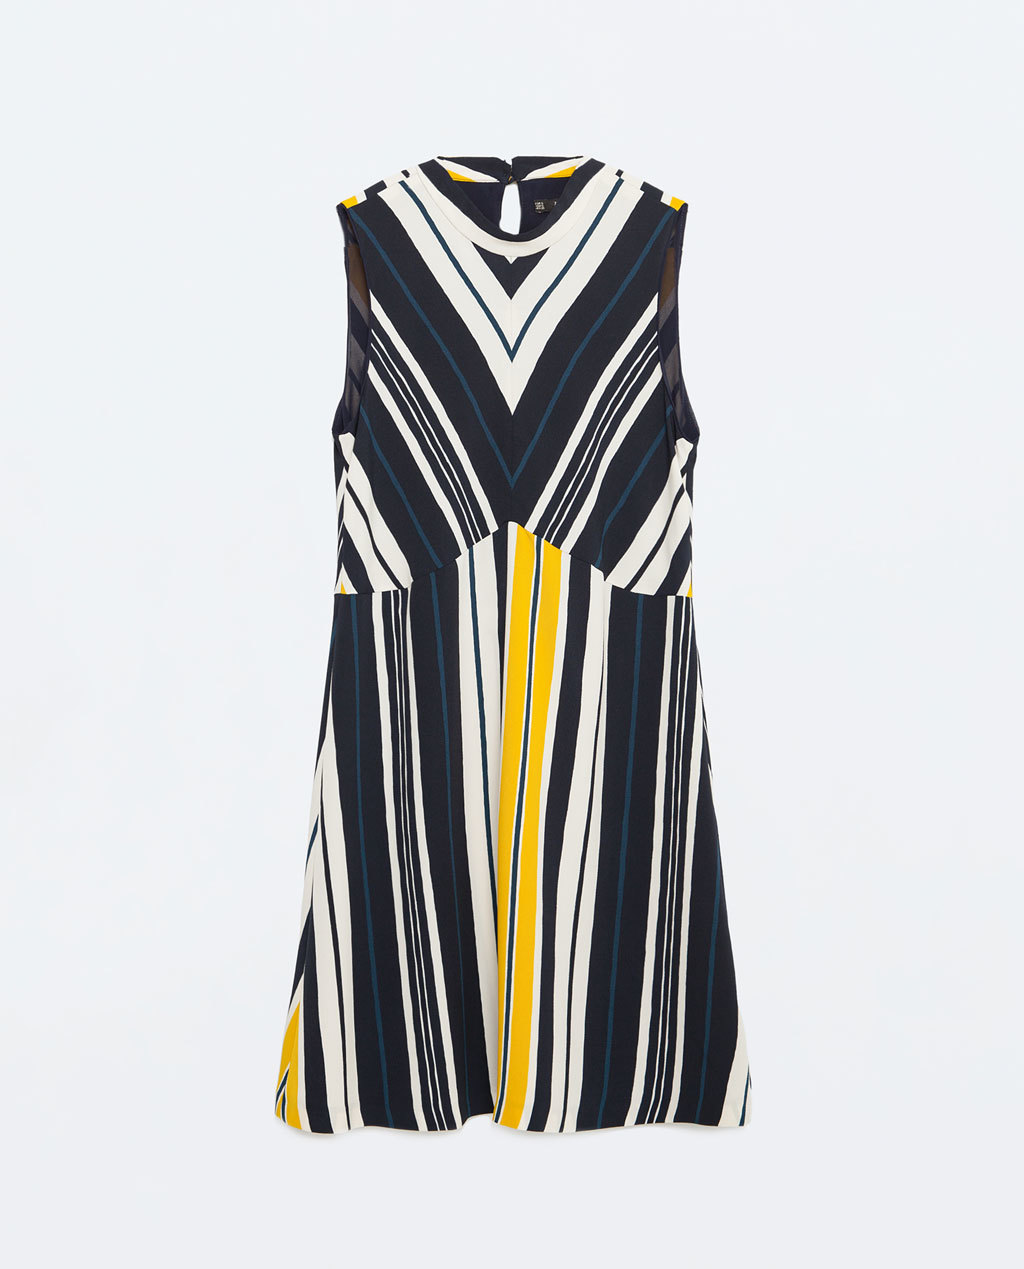 A Line Striped Dress - style: shift; length: mid thigh; fit: empire; pattern: horizontal stripes; sleeve style: sleeveless; predominant colour: navy; secondary colour: yellow; occasions: evening, creative work; fibres: polyester/polyamide - 100%; neckline: crew; sleeve length: sleeveless; texture group: cotton feel fabrics; pattern type: fabric; pattern size: big & busy; season: s/s 2016